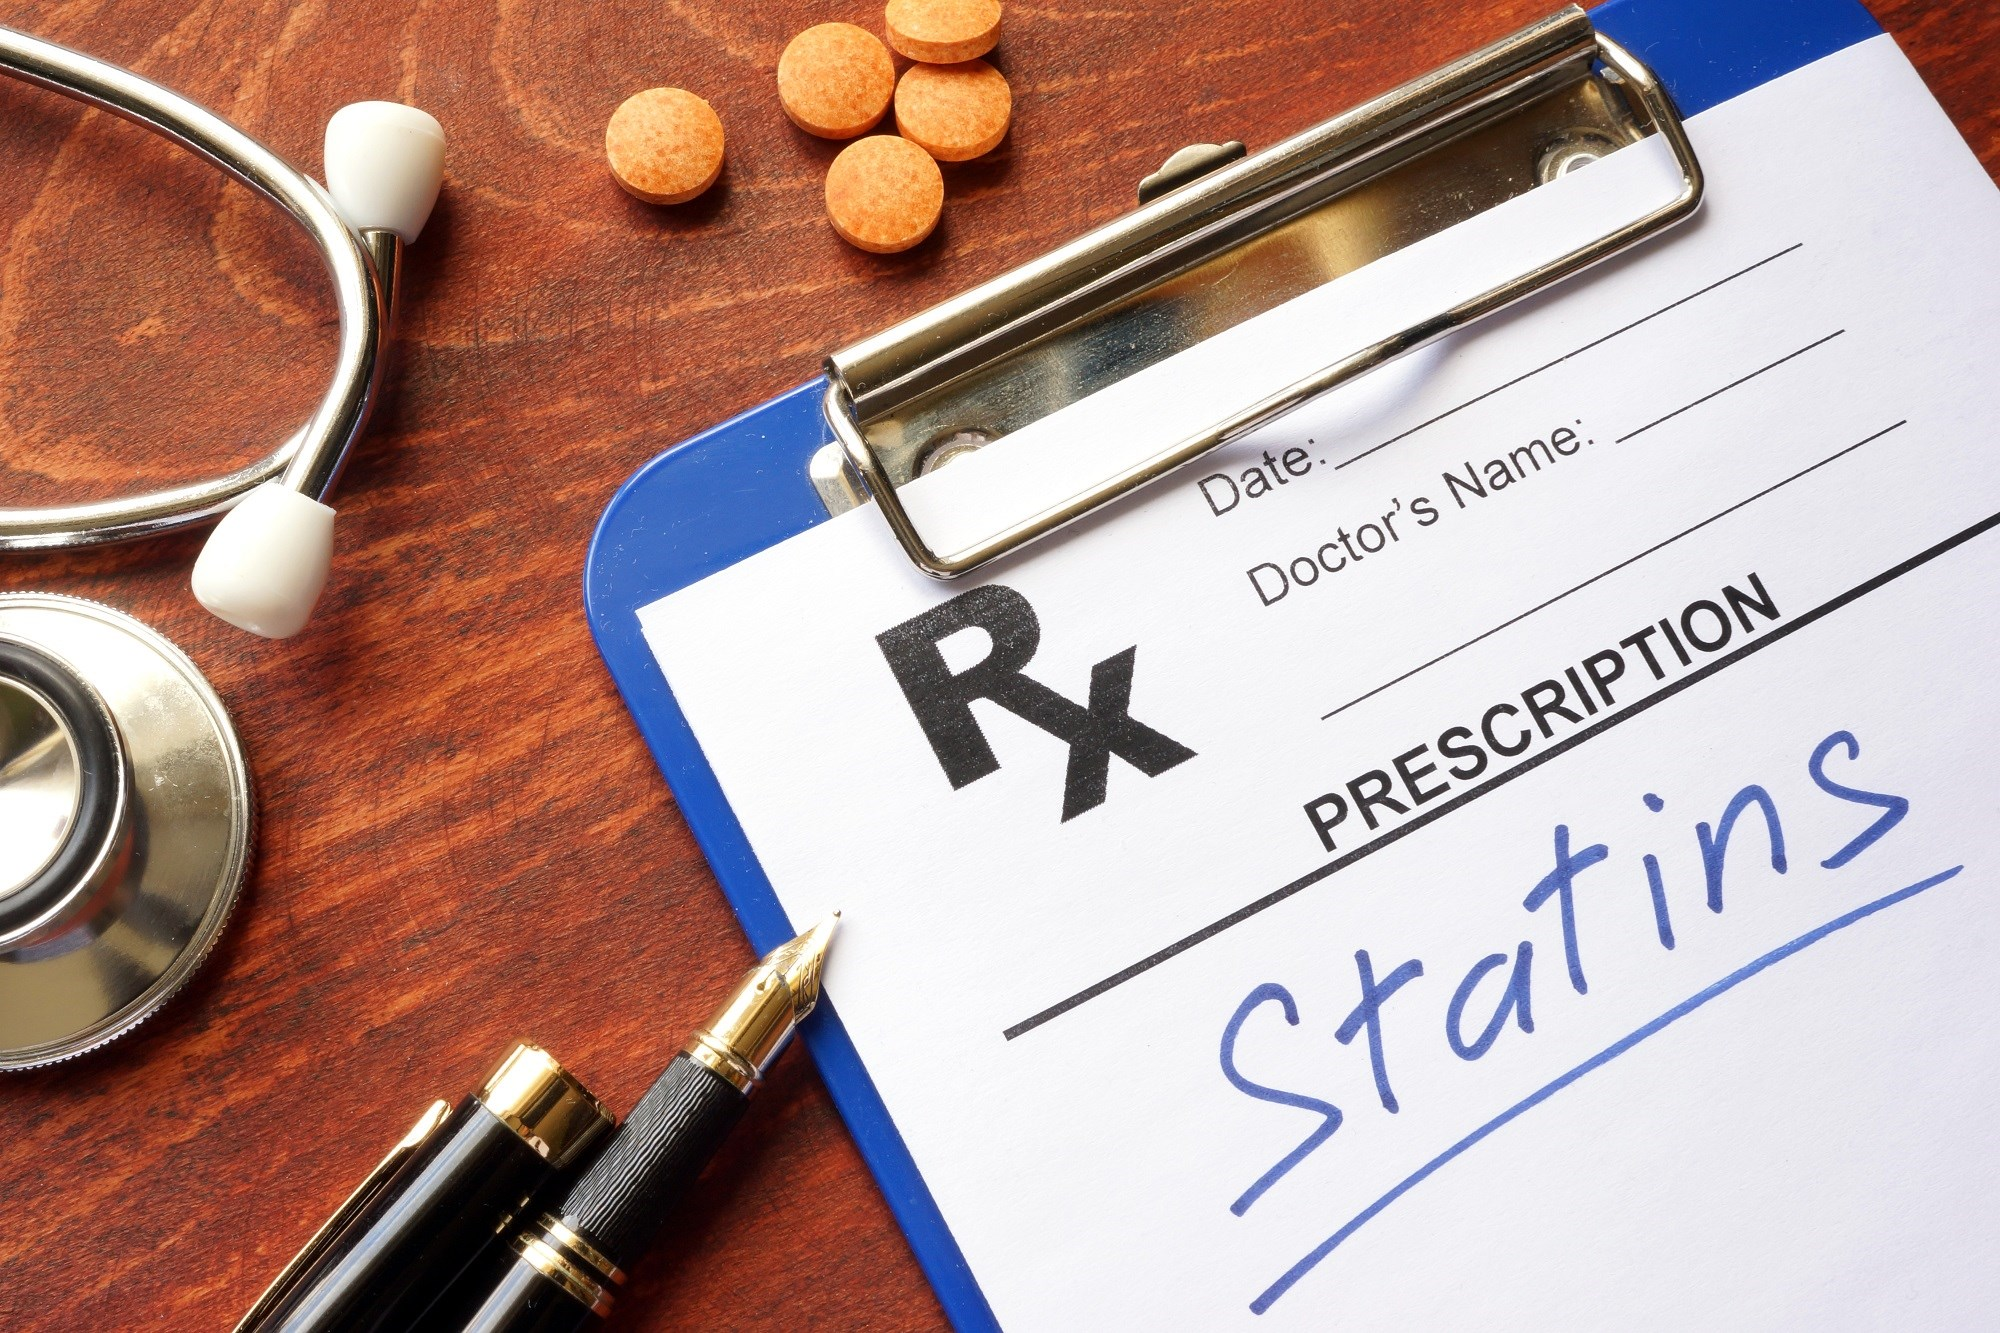 First-year nonadherence and discontinuation are high among older adults prescribed statins.